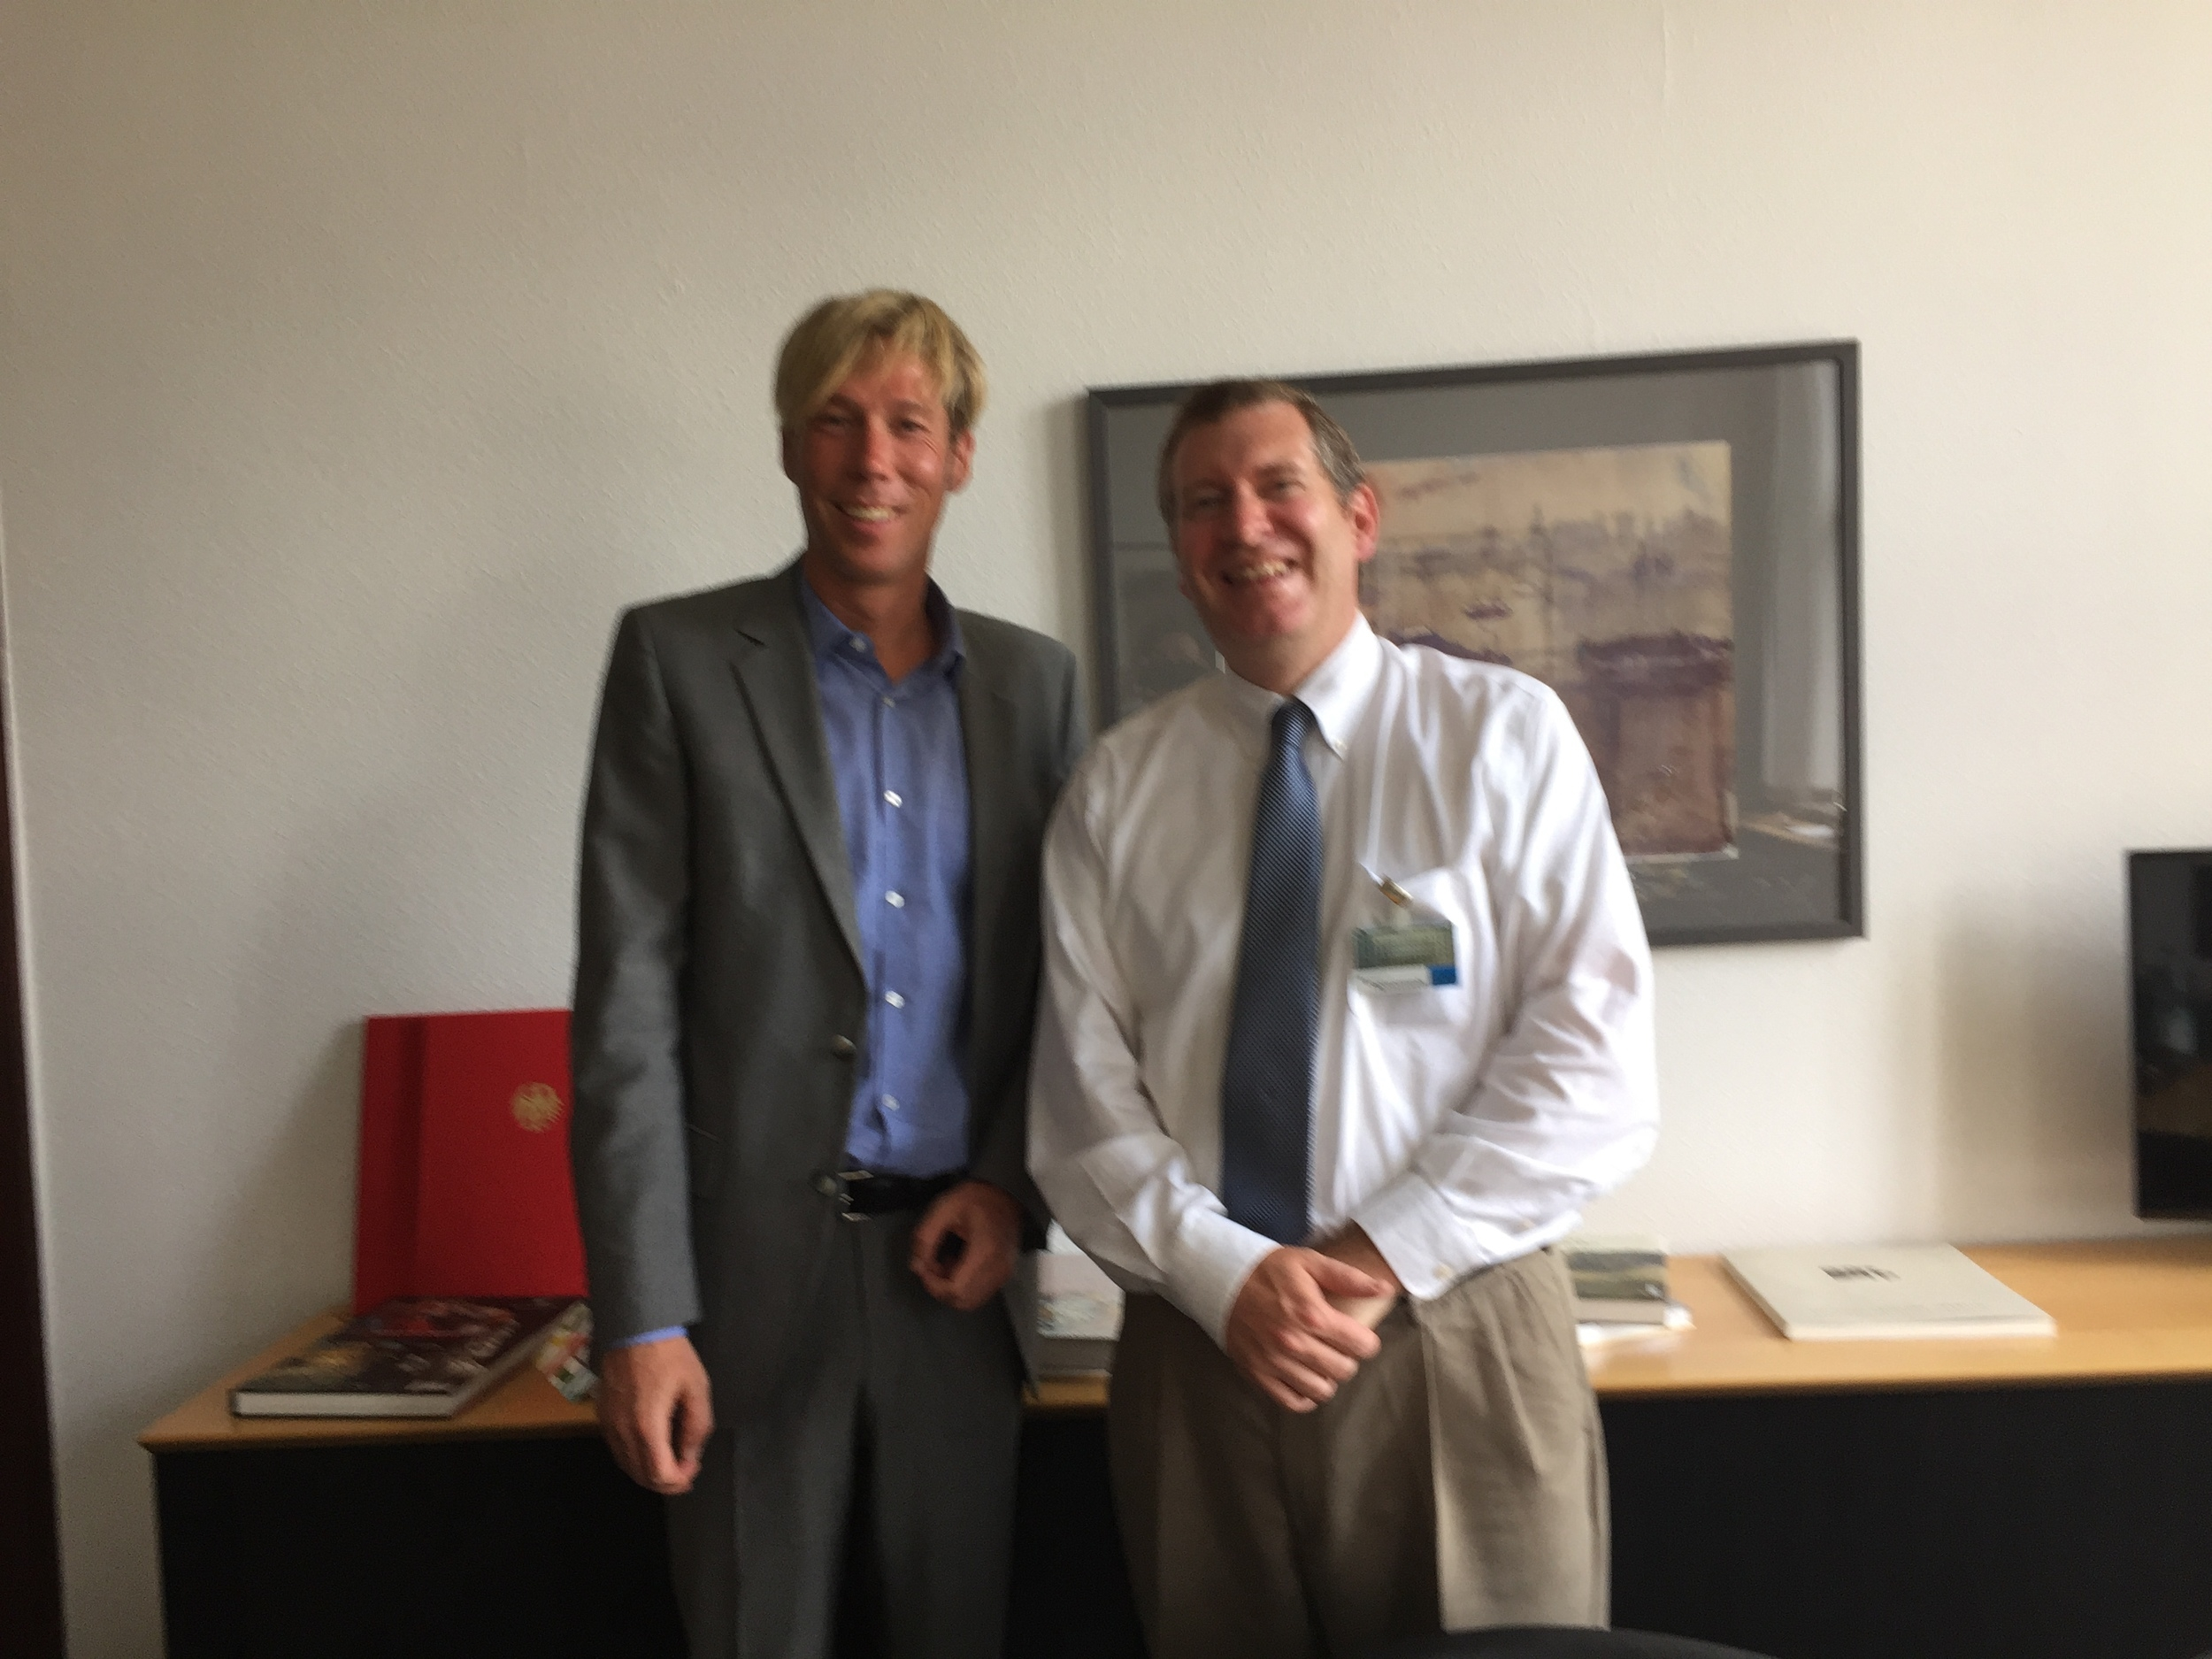 John Lunt with Torsten Arnswald, Economic Advisor and Head of Fiscal Policy Division